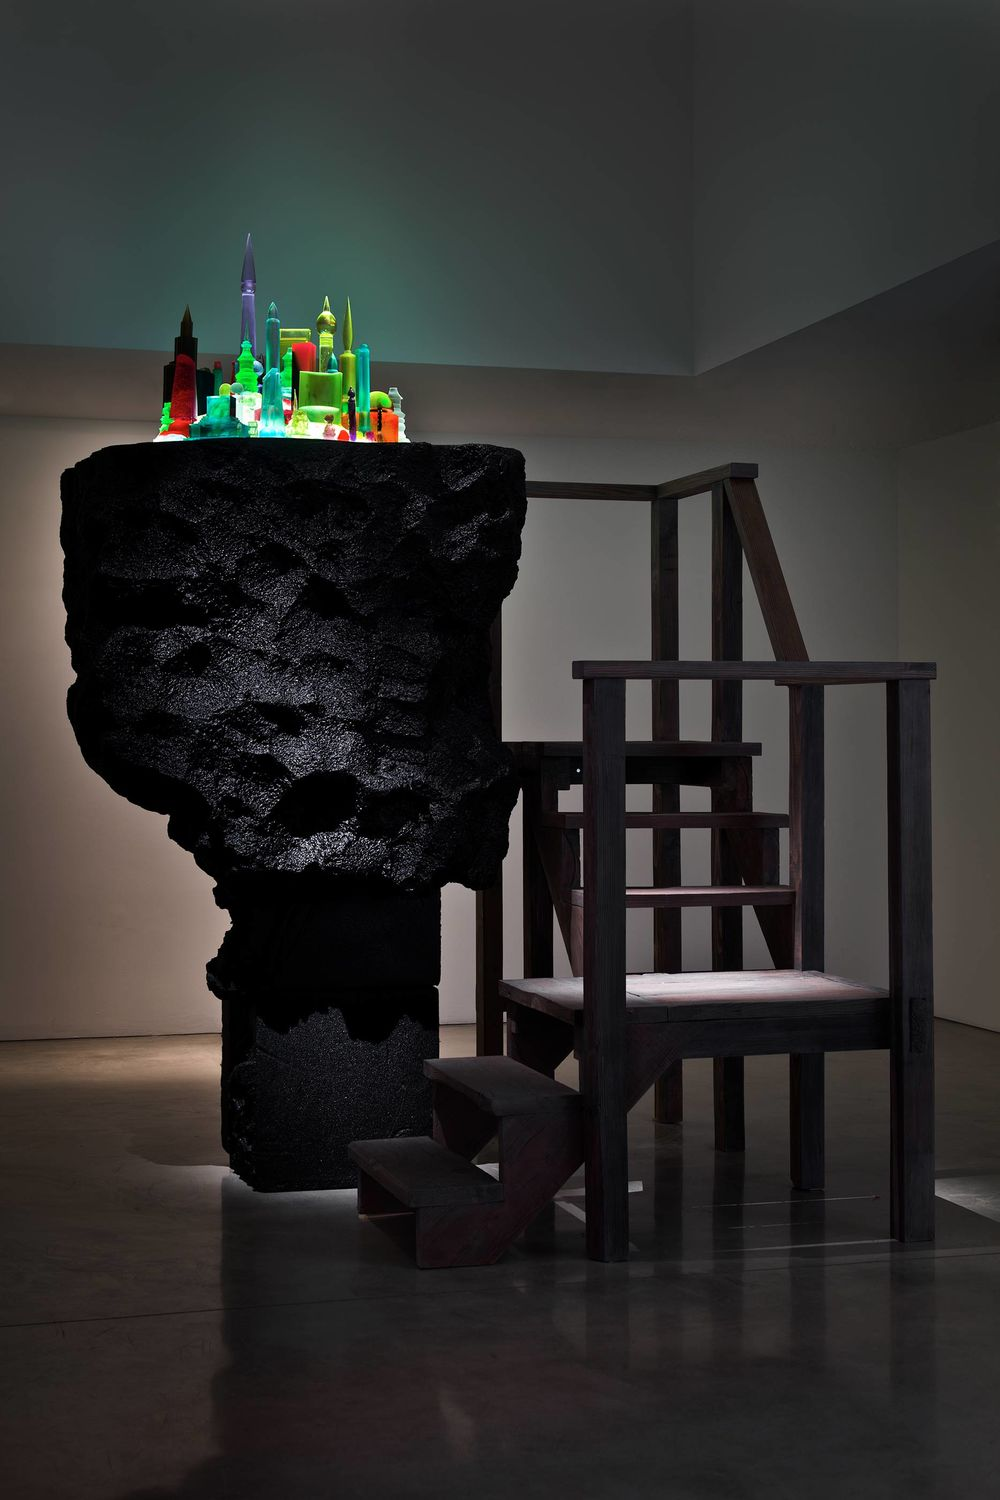 Mike Kelley, City 000, 2010. Mixed media. Hammer Museum, Los Angeles. Purchased through the Board of Overseers Acquisition Fund with additional funds provided by Chara Schreyer and Jeanne Greenberg Rohatyn and Nicolas Rohatyn.